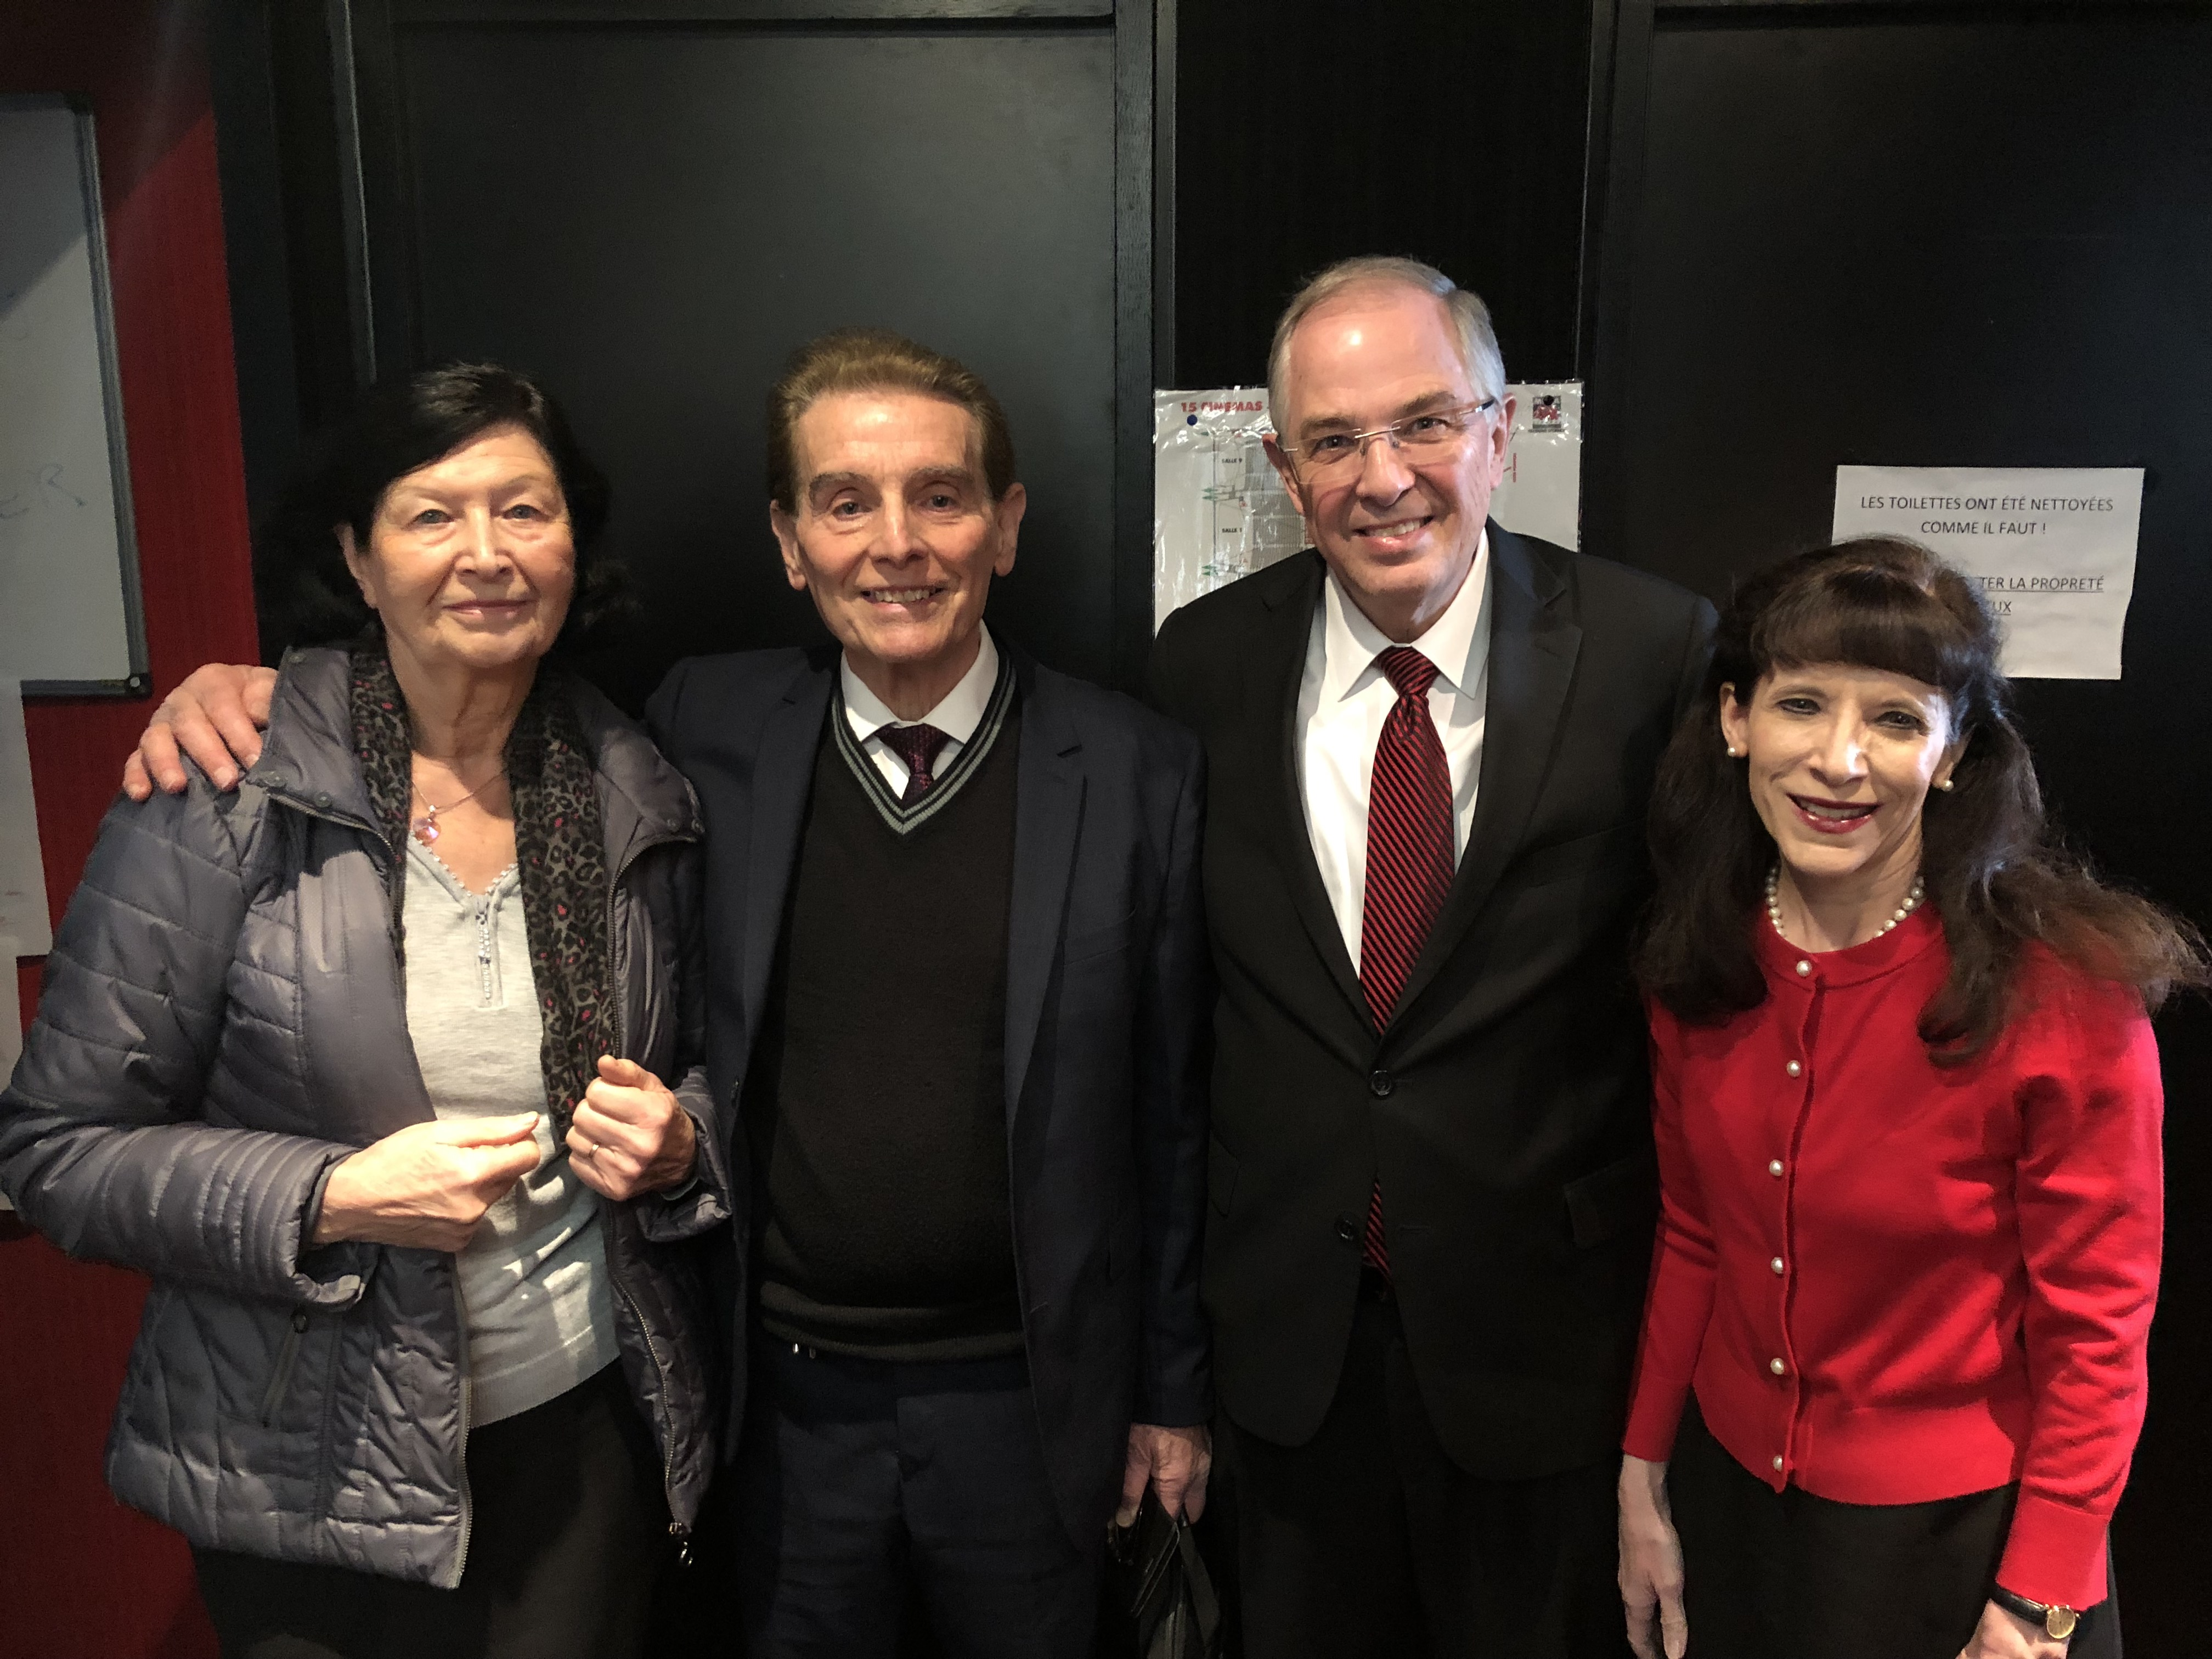 Marie-Blanche and Jean Caussé stand with Elder Neil L. Andersen and Sister Kathy Andersen. Brother and Sister Caussé are the parents of Presiding Bishop Gérald Caussé and Elder and Sister Andersen's former branch president.